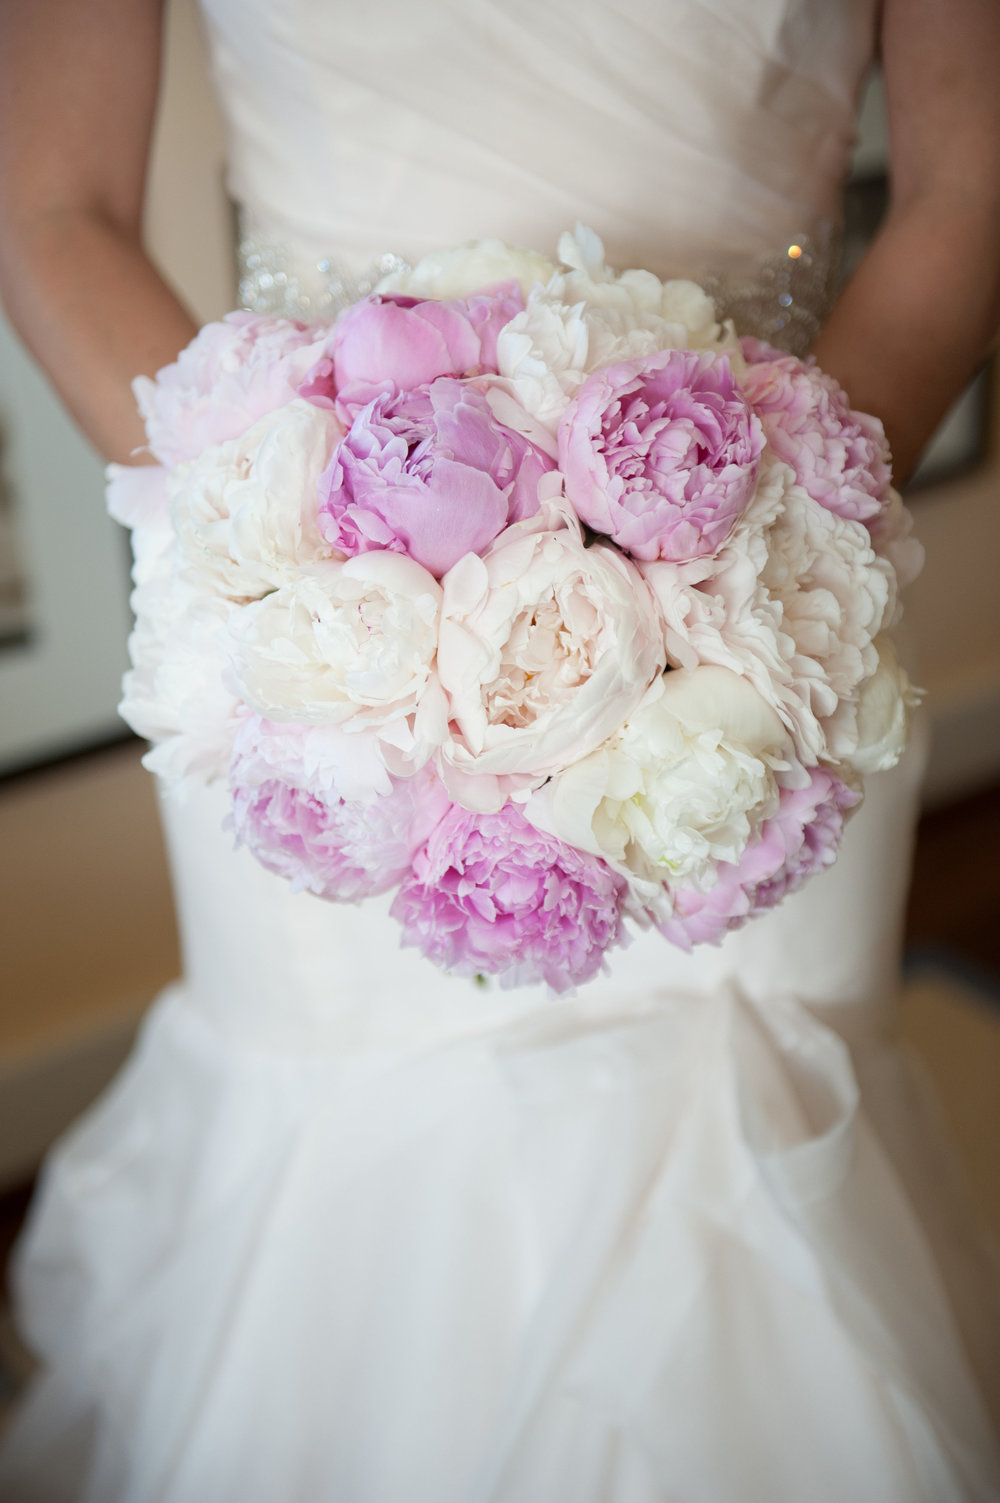 pink and white lush bridal bouquet by Passion Roots | Rachel Robertson photography | Oahu, Hawaii